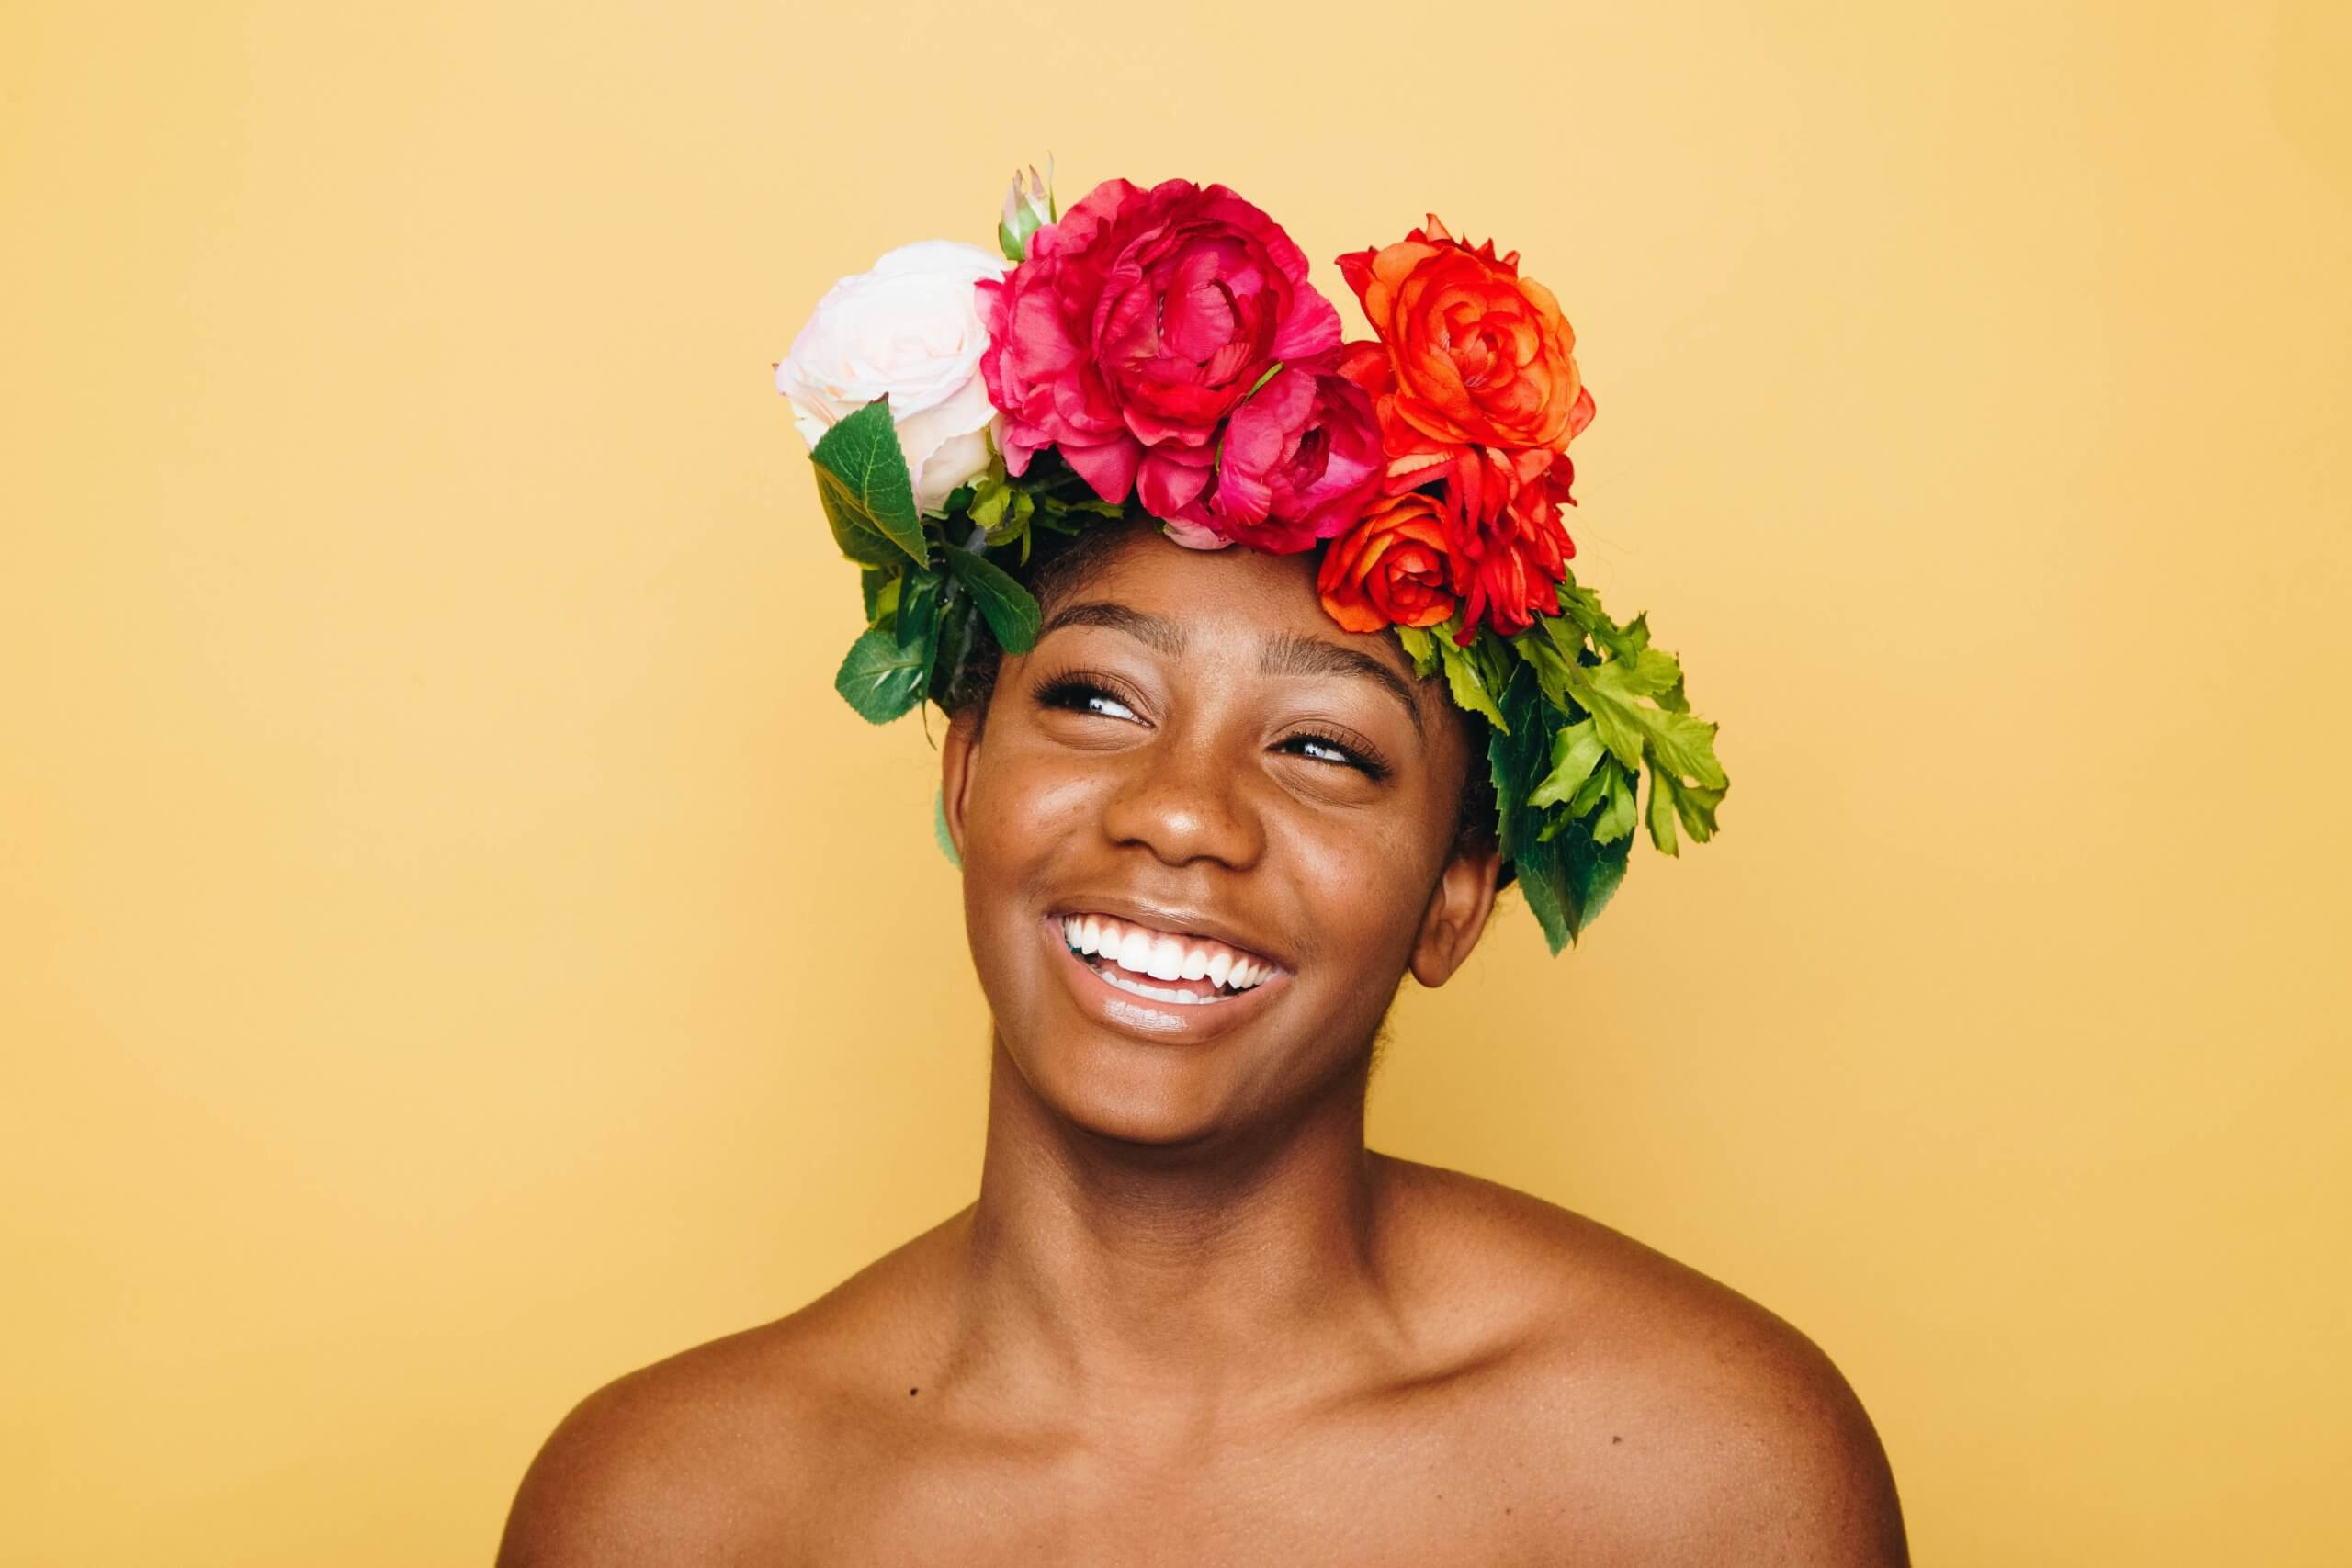 Purely Decorative - Girl with ring of flowers on her head Photo by Autumn Goodman on Unsplash